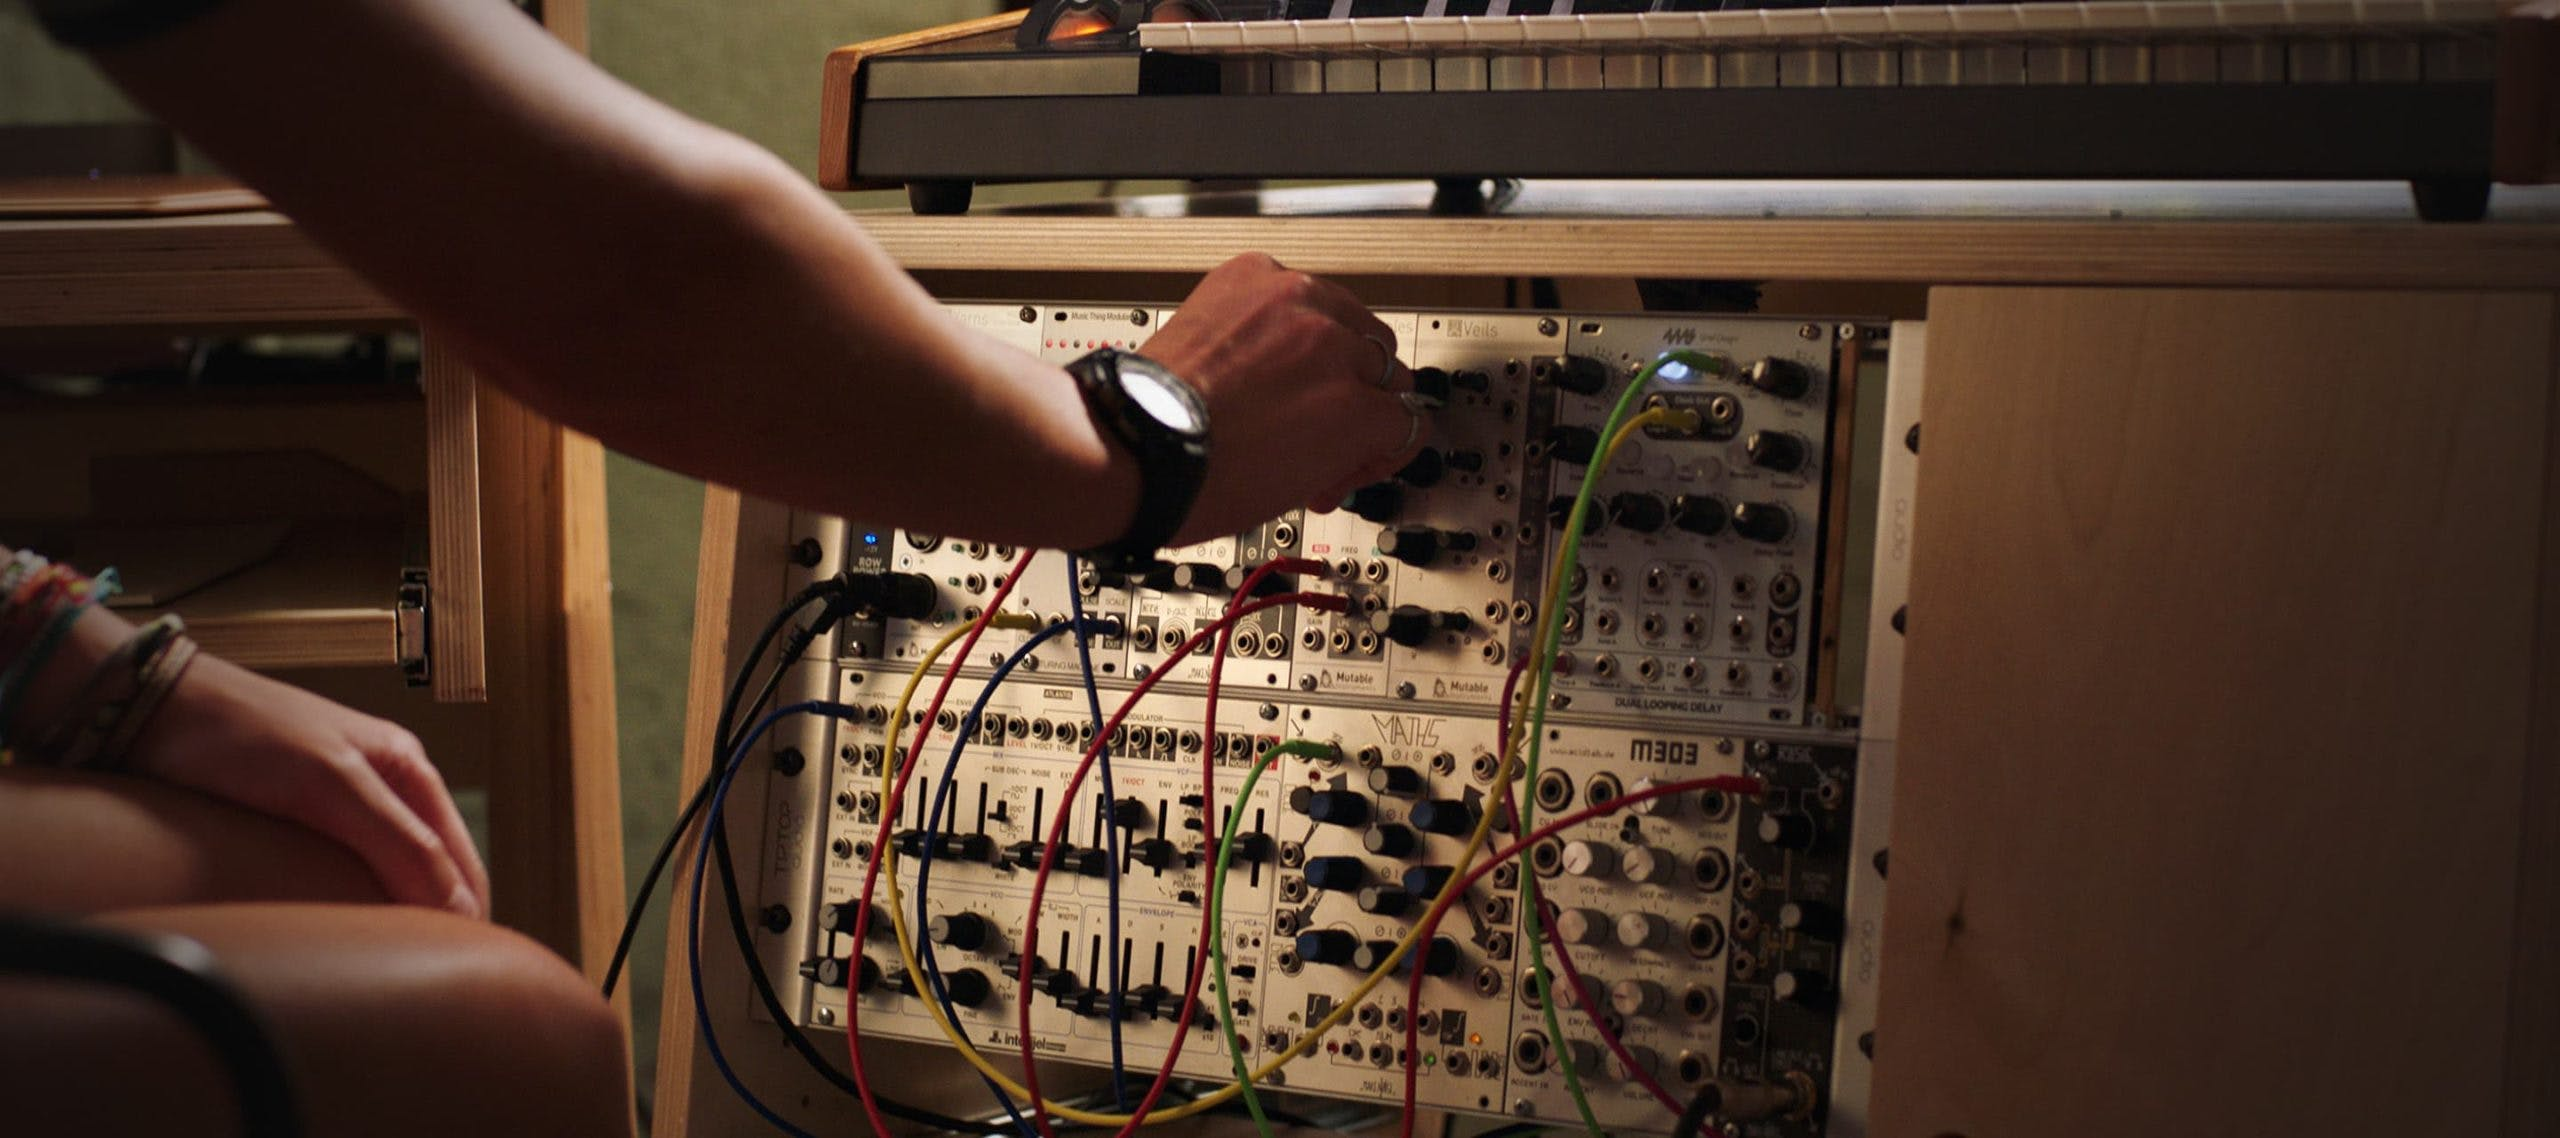 Person using analog synth held in natural color Output Sidecar accessory.